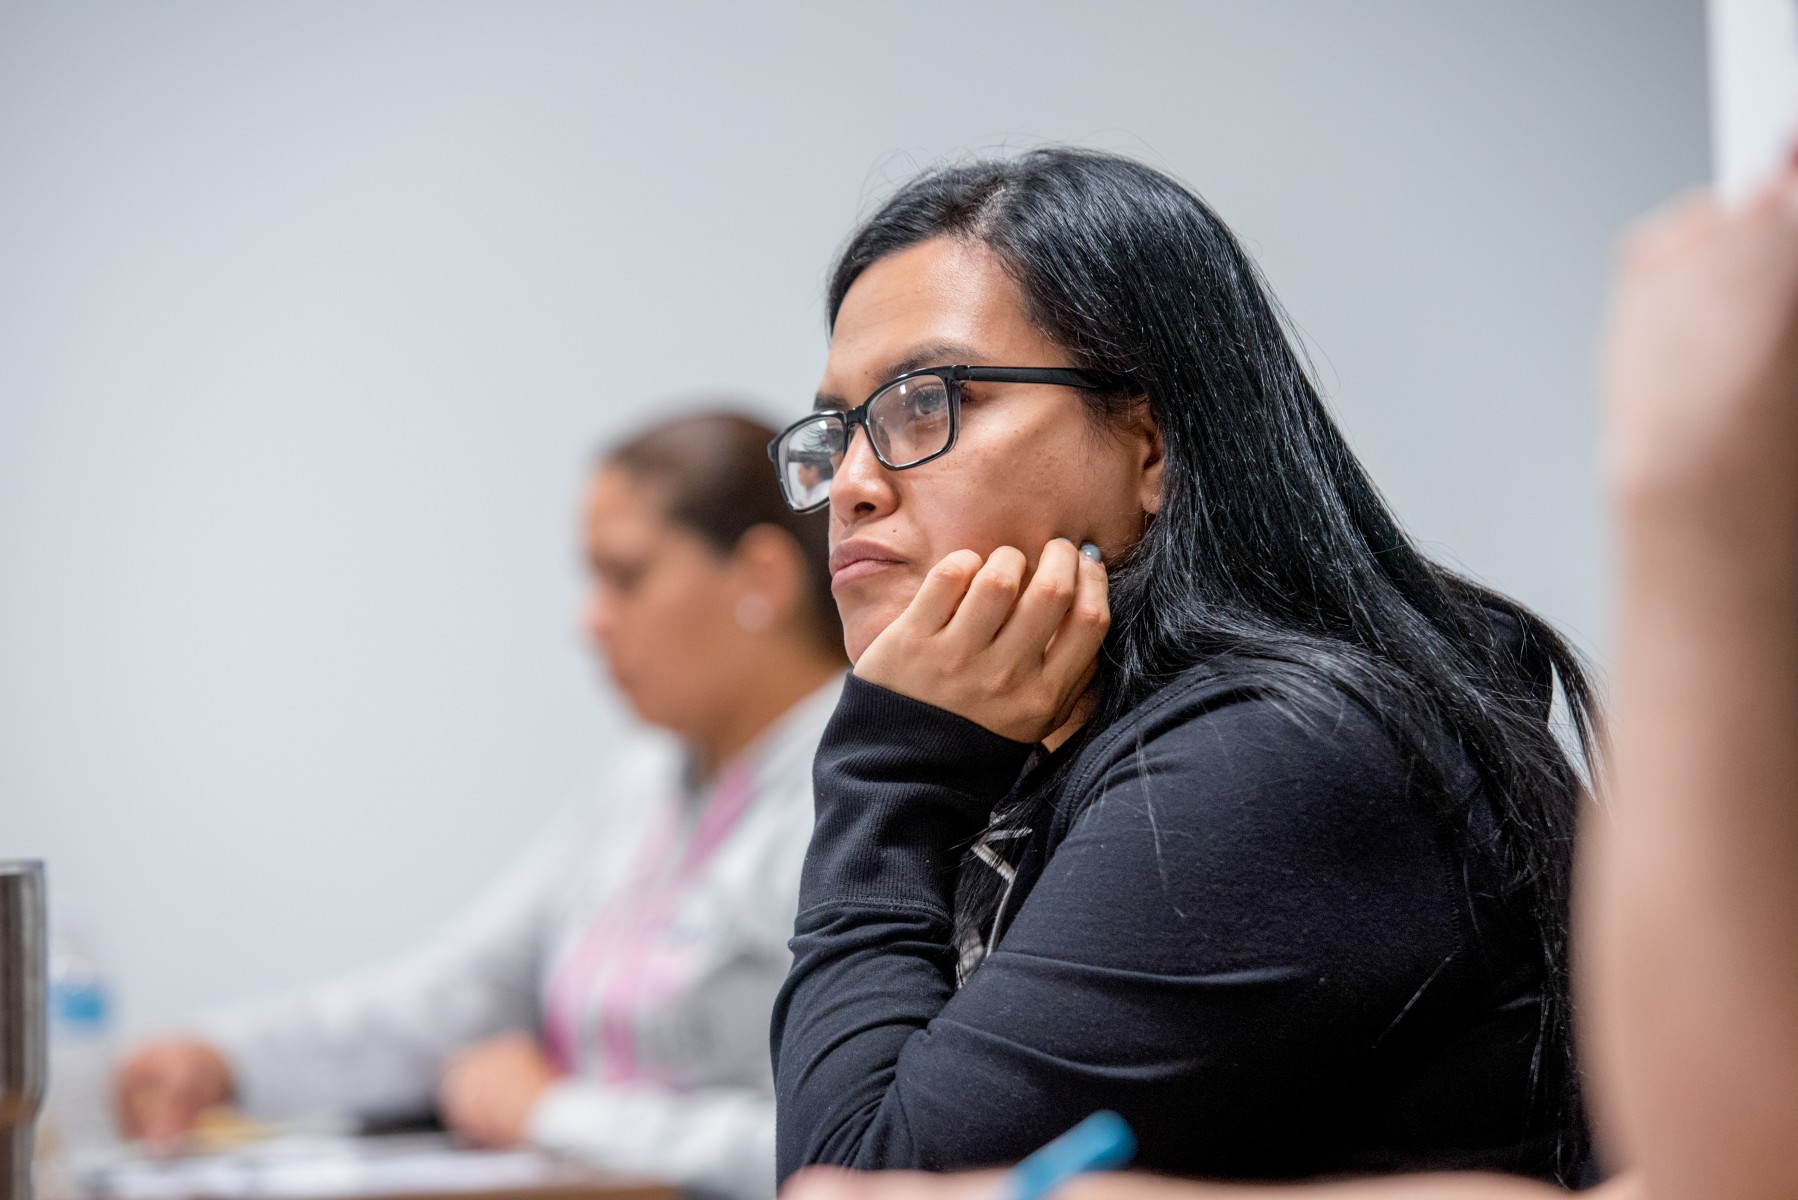 Female students with long black hair and glasses, hand on chin, looking forward, seated at desk, looking forward at instructor.